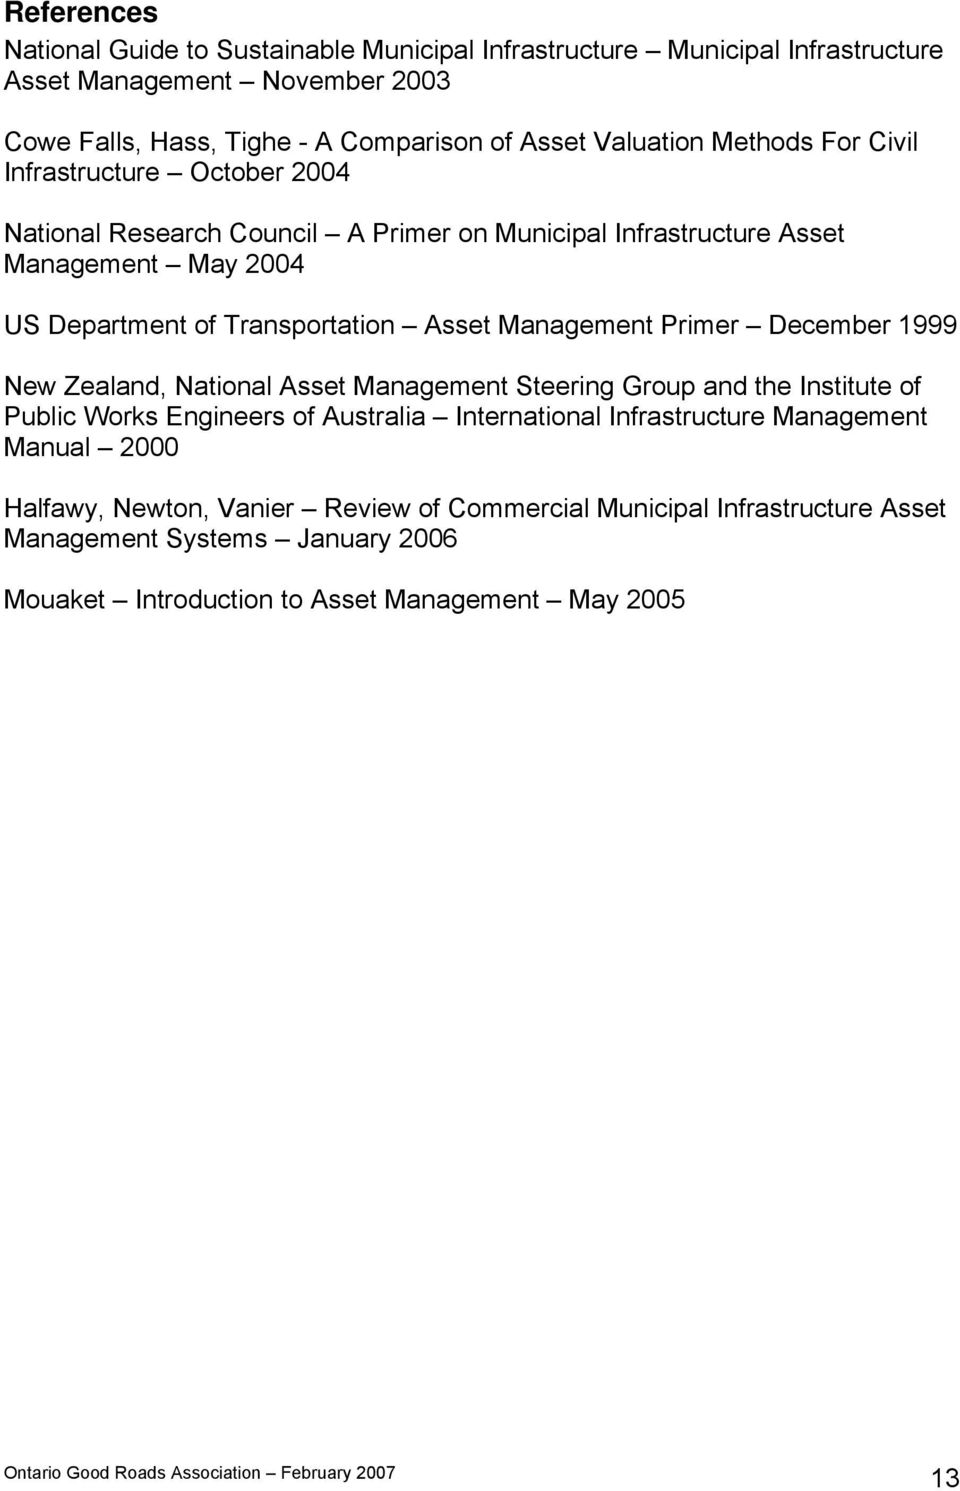 Asset Management Primer December 1999 New Zealand, National Asset Management Steering Group and the Institute of Public Works Engineers of Australia International